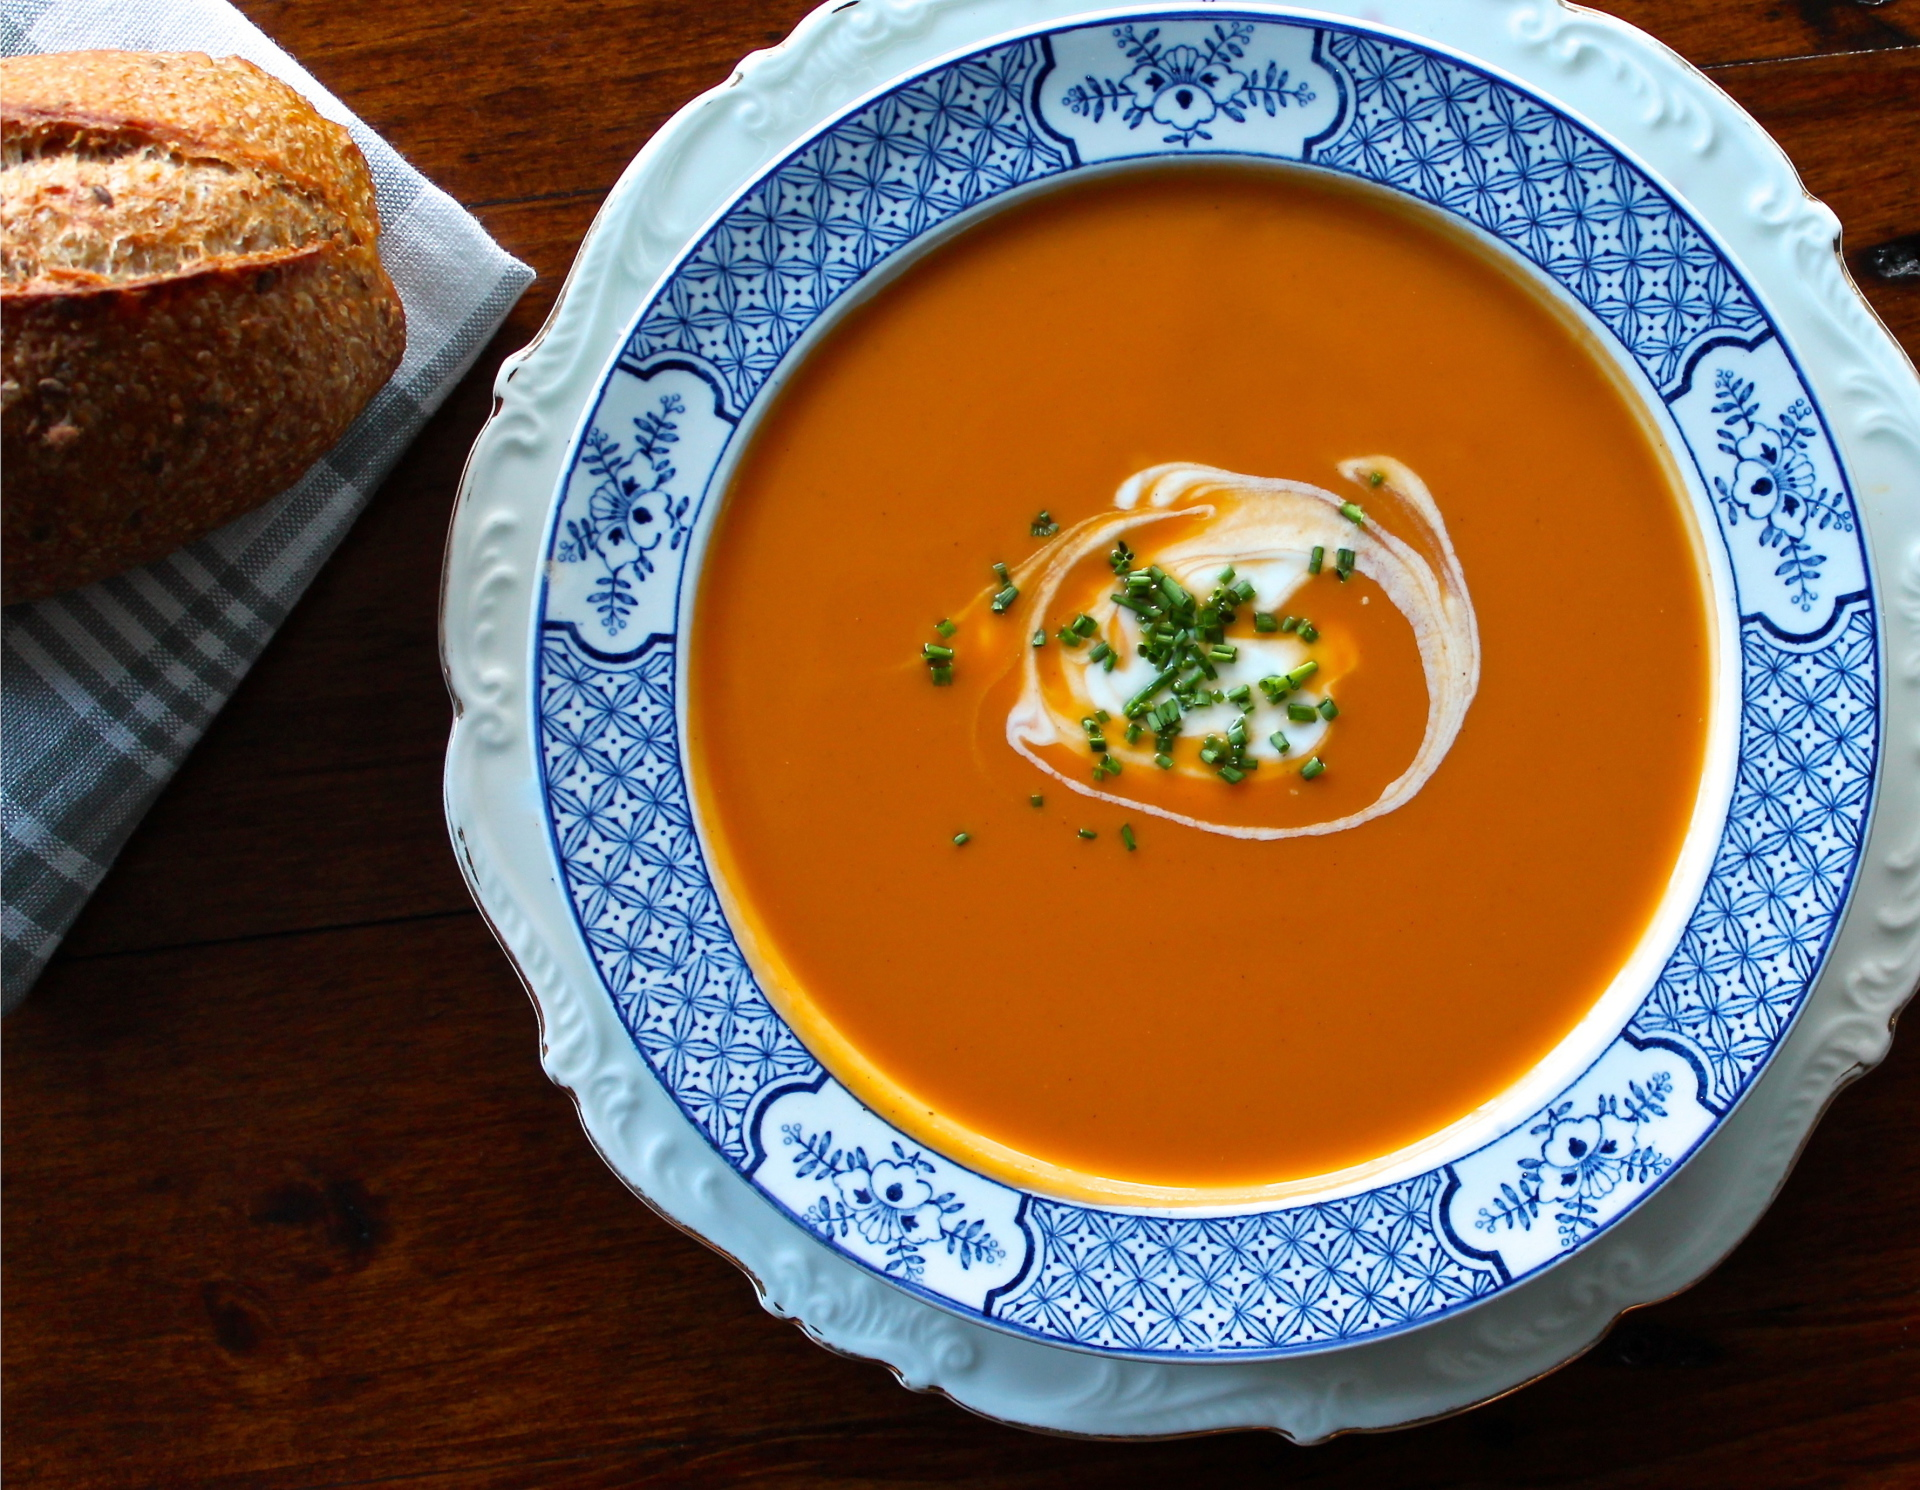 Cooking 101: Caramelized Carrot Soup